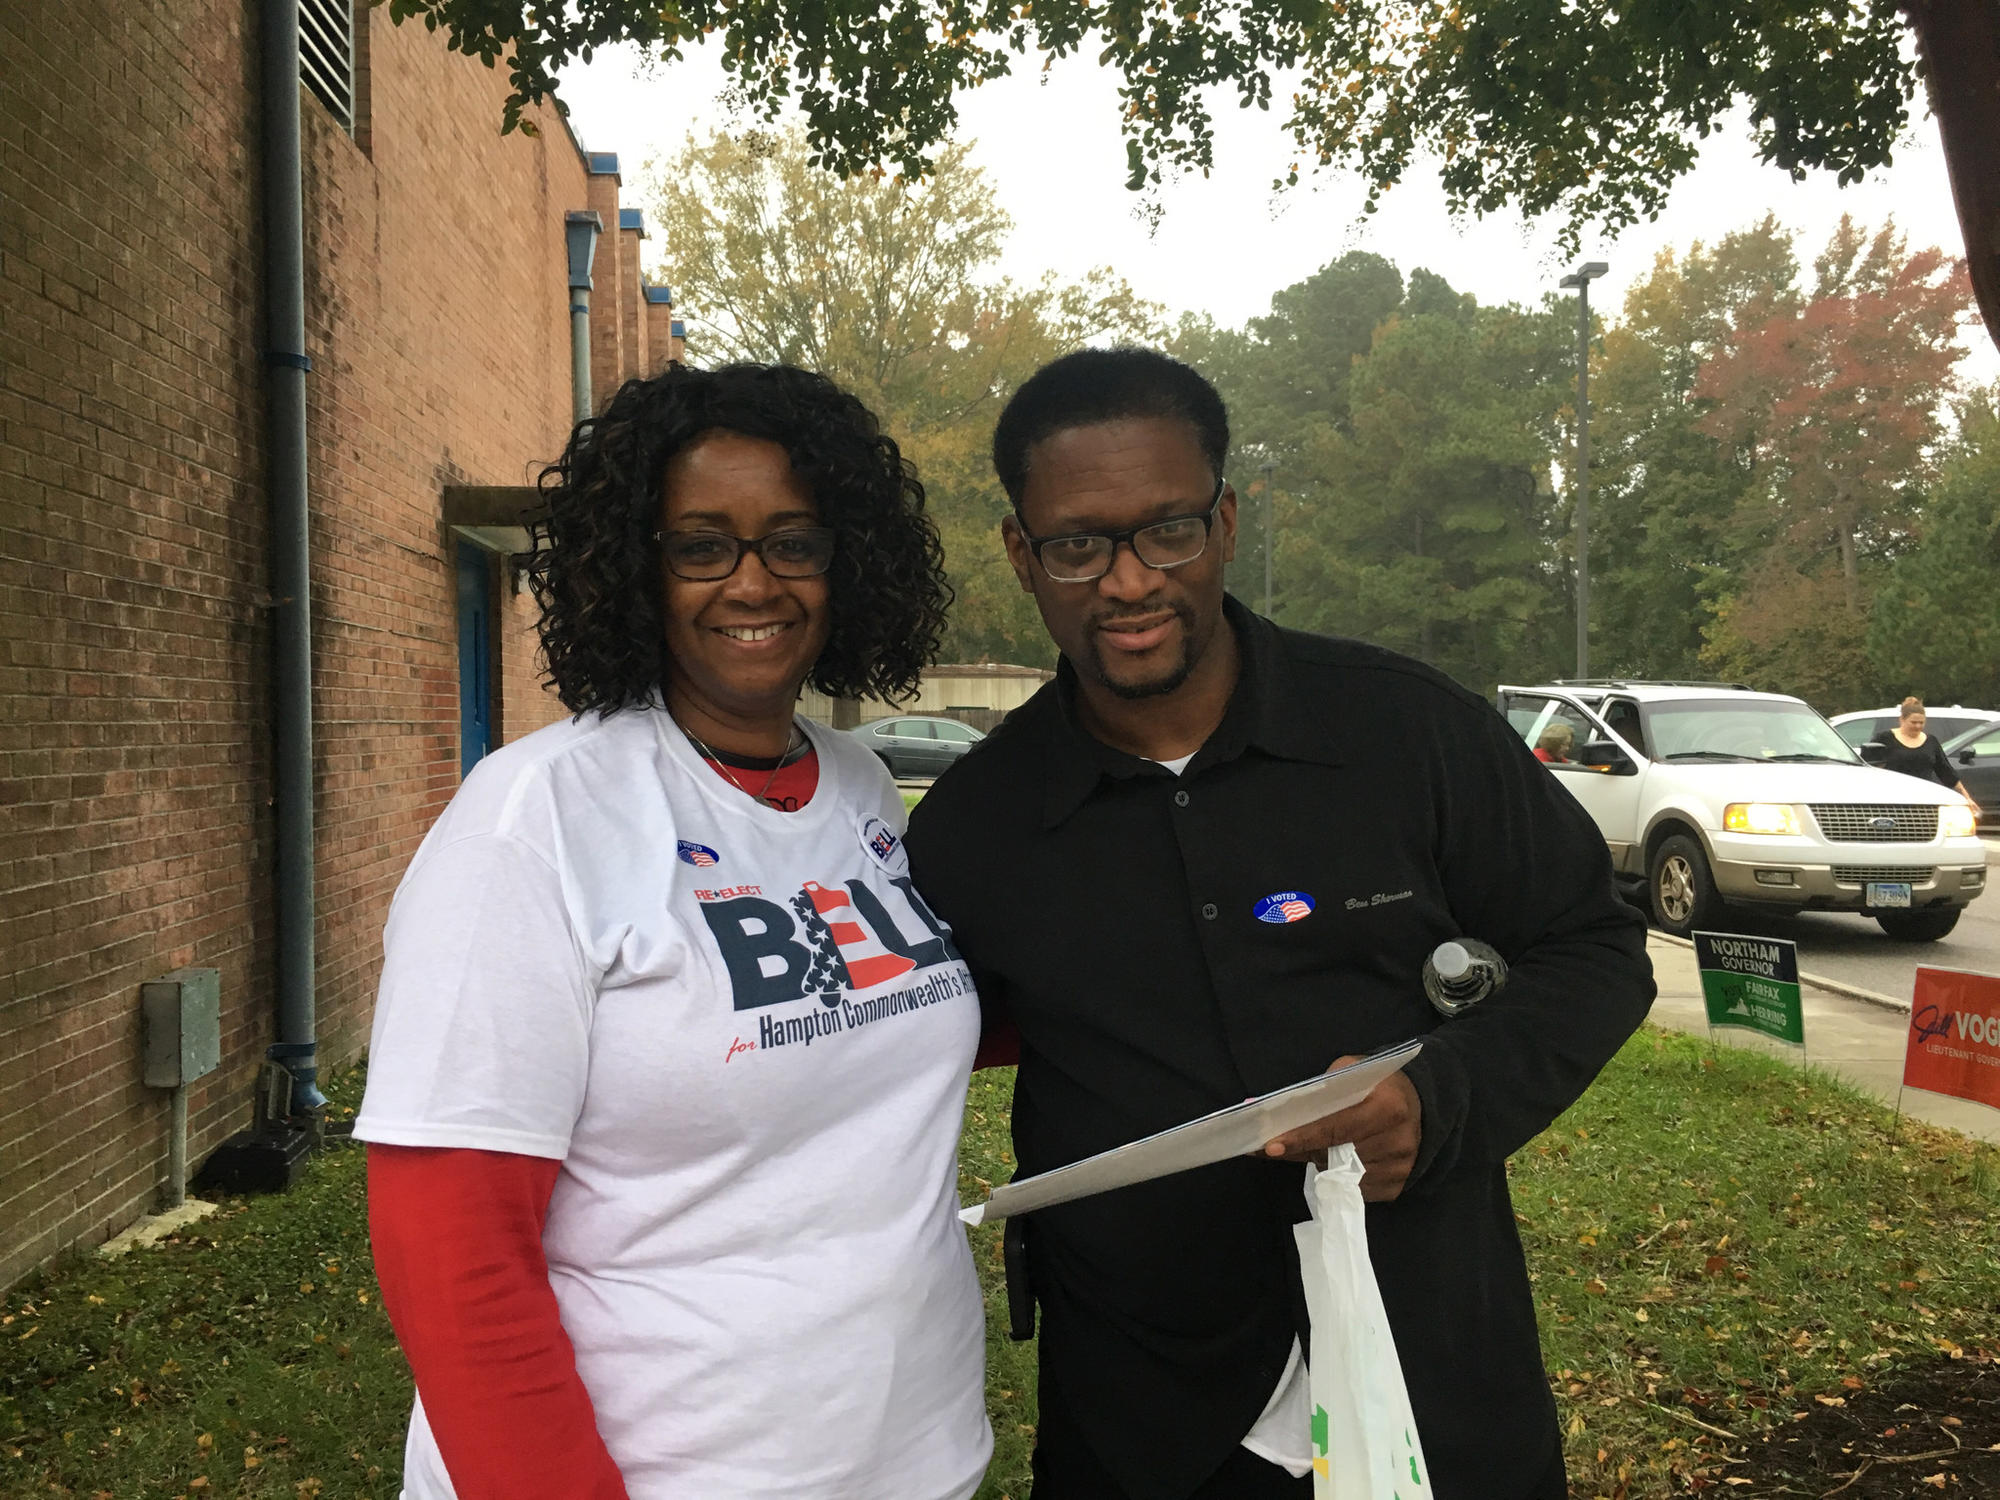 Natalie Christian and Malcolm Hill, volunteers outside Kraft Elementary School, handed out sample ballots. Christian was volunteering for Commonwealth's Attorney candidate Anton Bell.